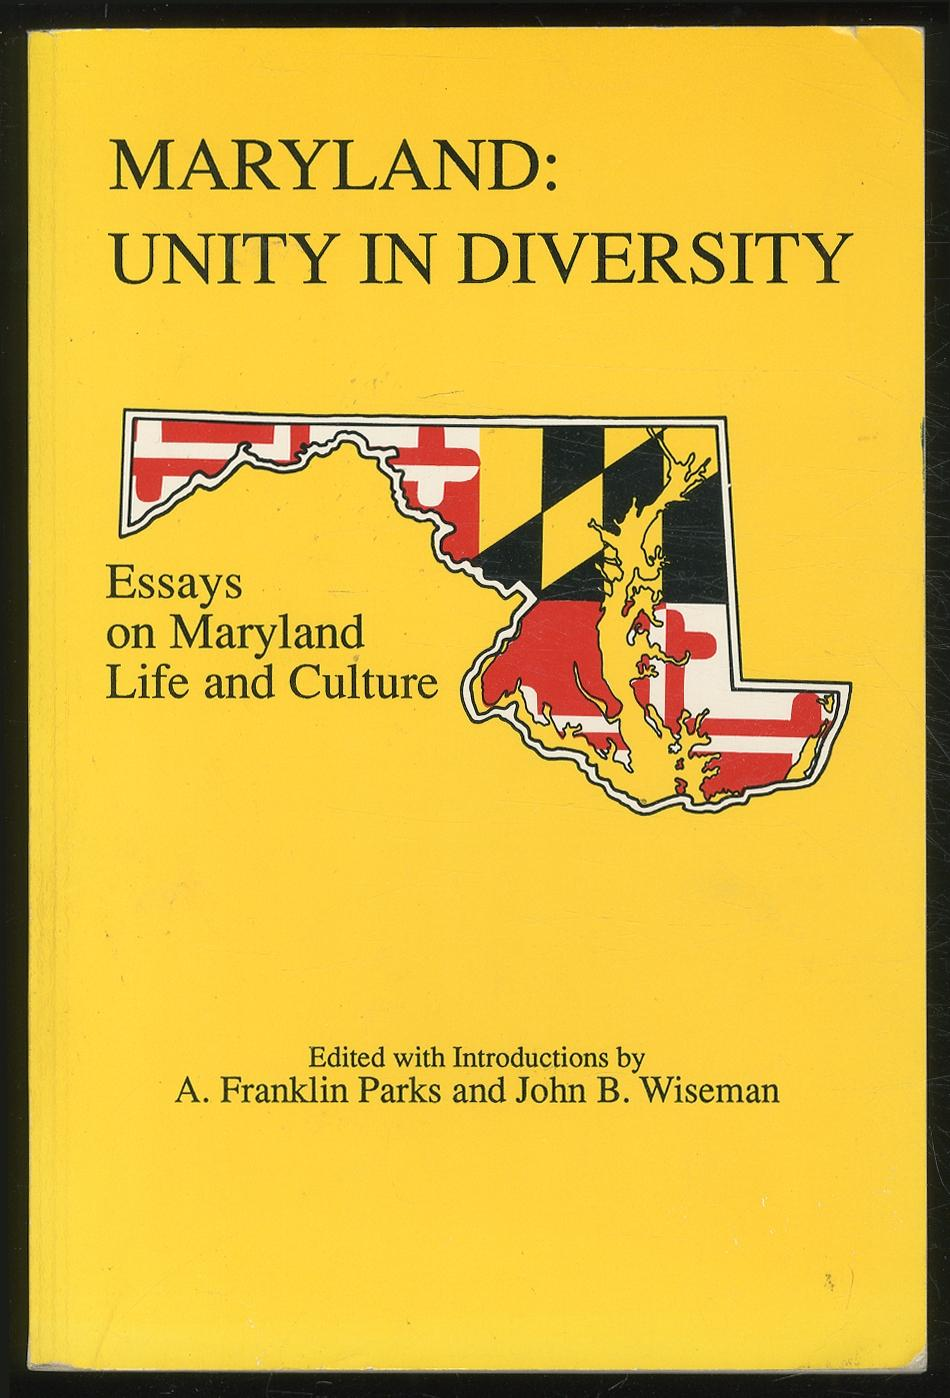 an introduction to the diversity in the united states Sample essay words 1,320 this essay presents some ethnical differences between nigeria and united states nigeria is very different from united states because its ethnic diversity is not separate like in united sates but it is intermingled and integrated to a very large extent, however all the races and ethnic groups retain their language.